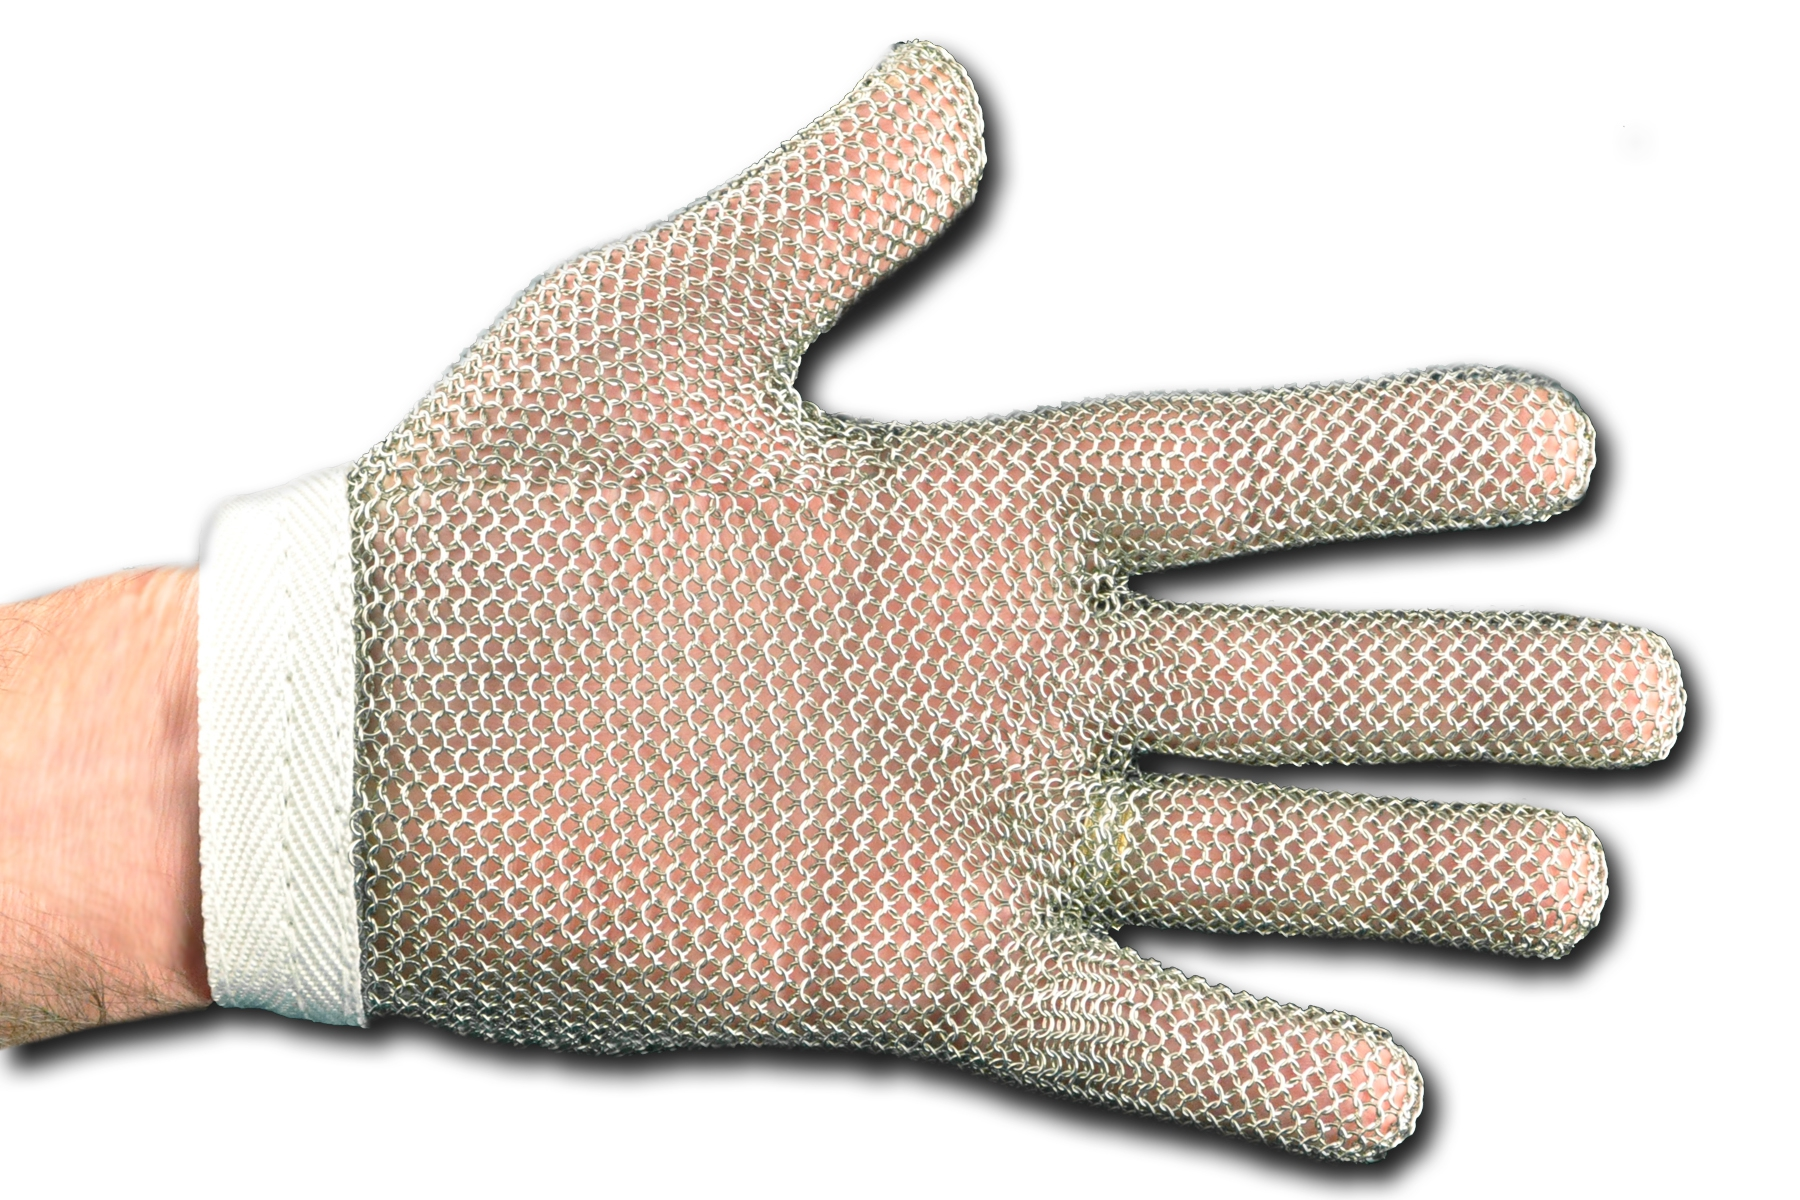 Dexter Russell 82053 protective gloves